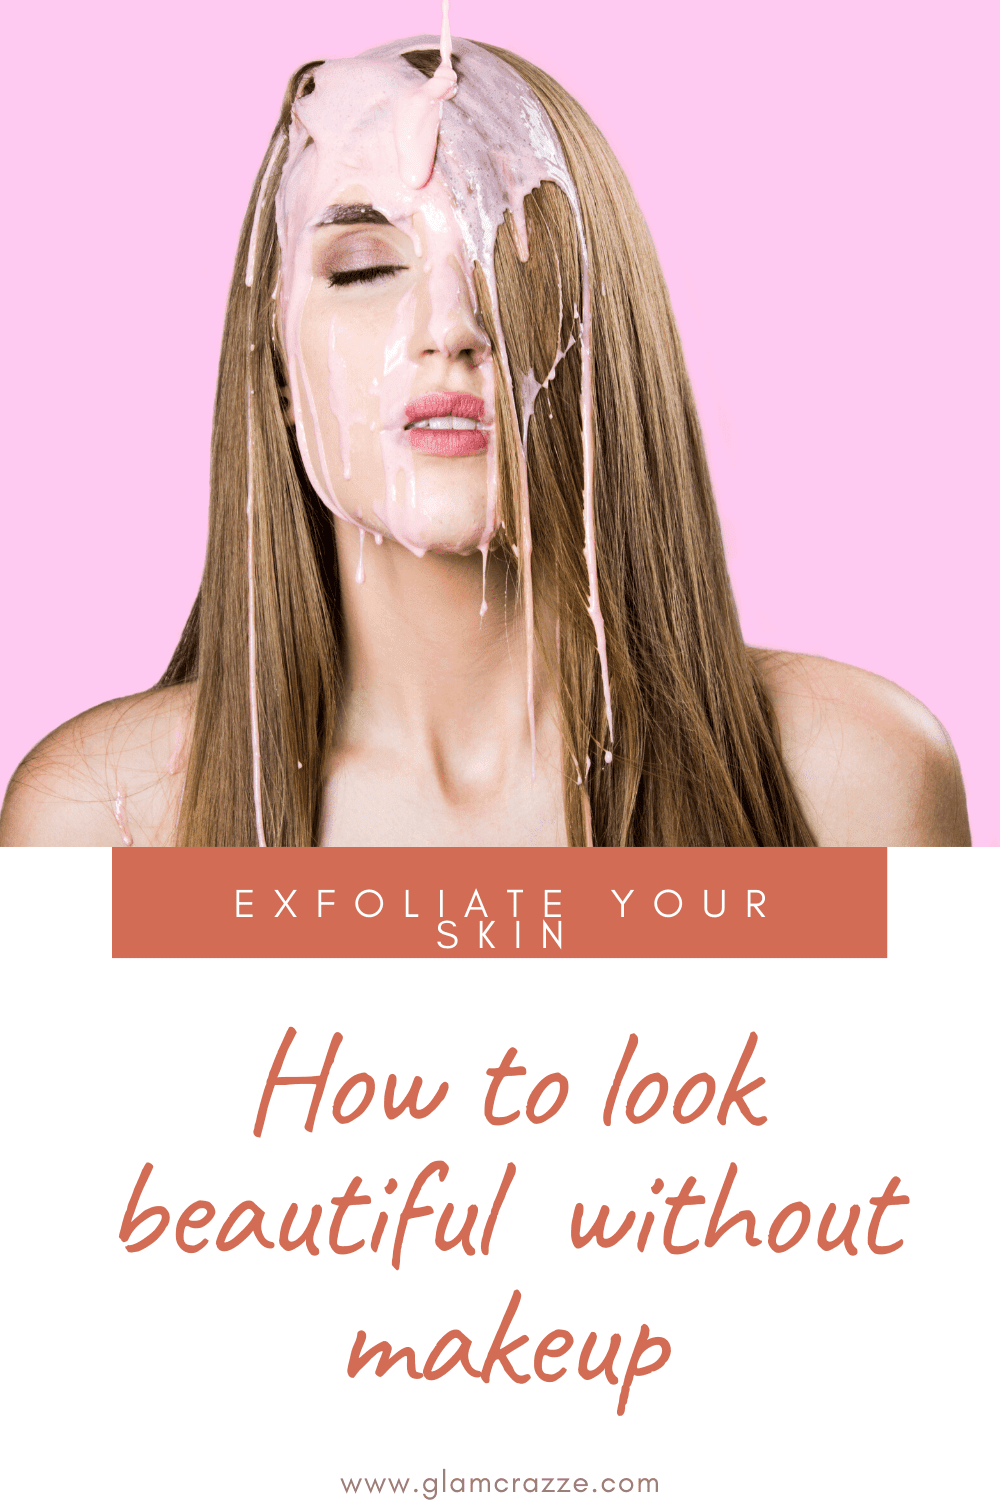 How to look beautiful without makeup starting just by exfoliating skin